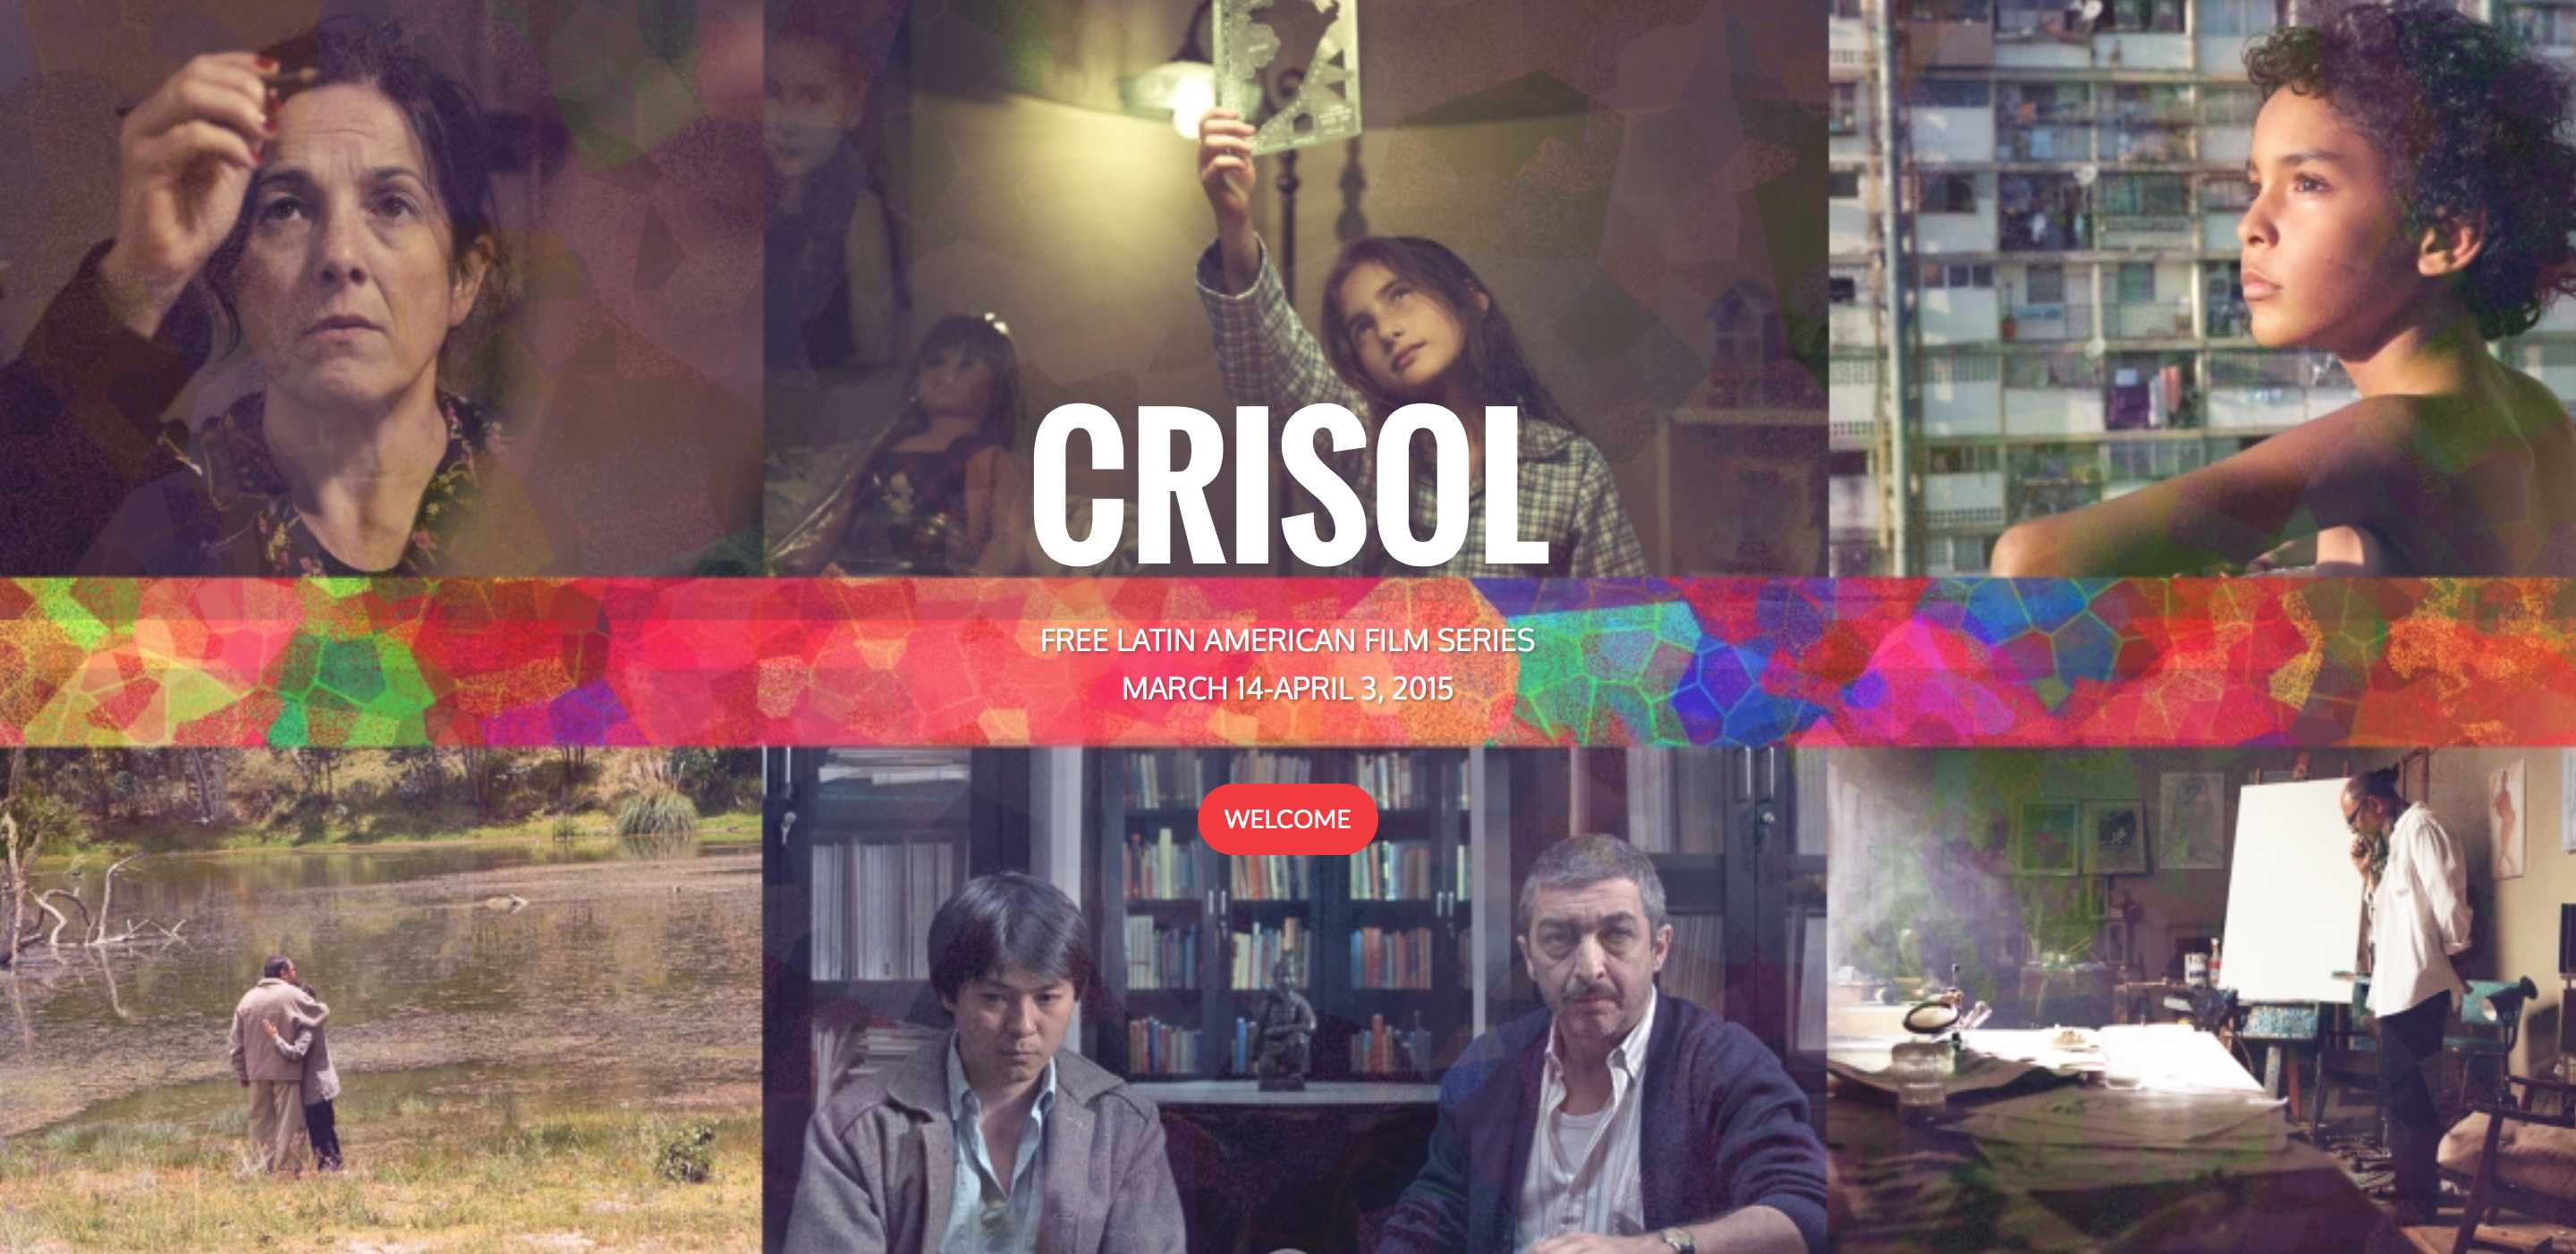 CRISOLFILMINITIATIVE WEB PAGE